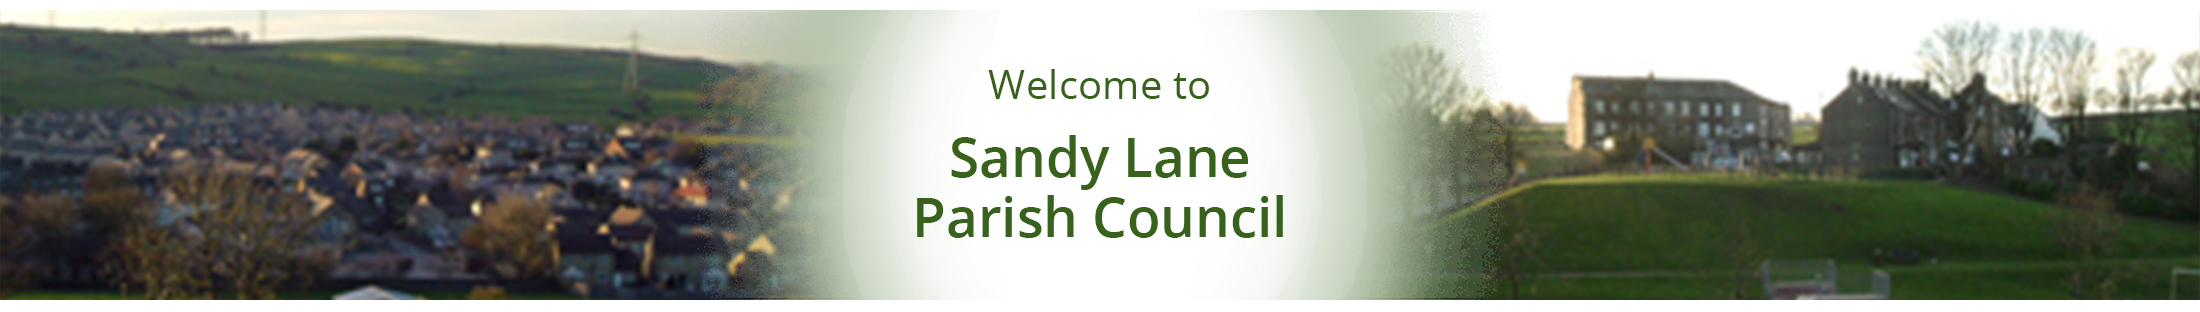 Header Image for Sandy Lane Parish Council